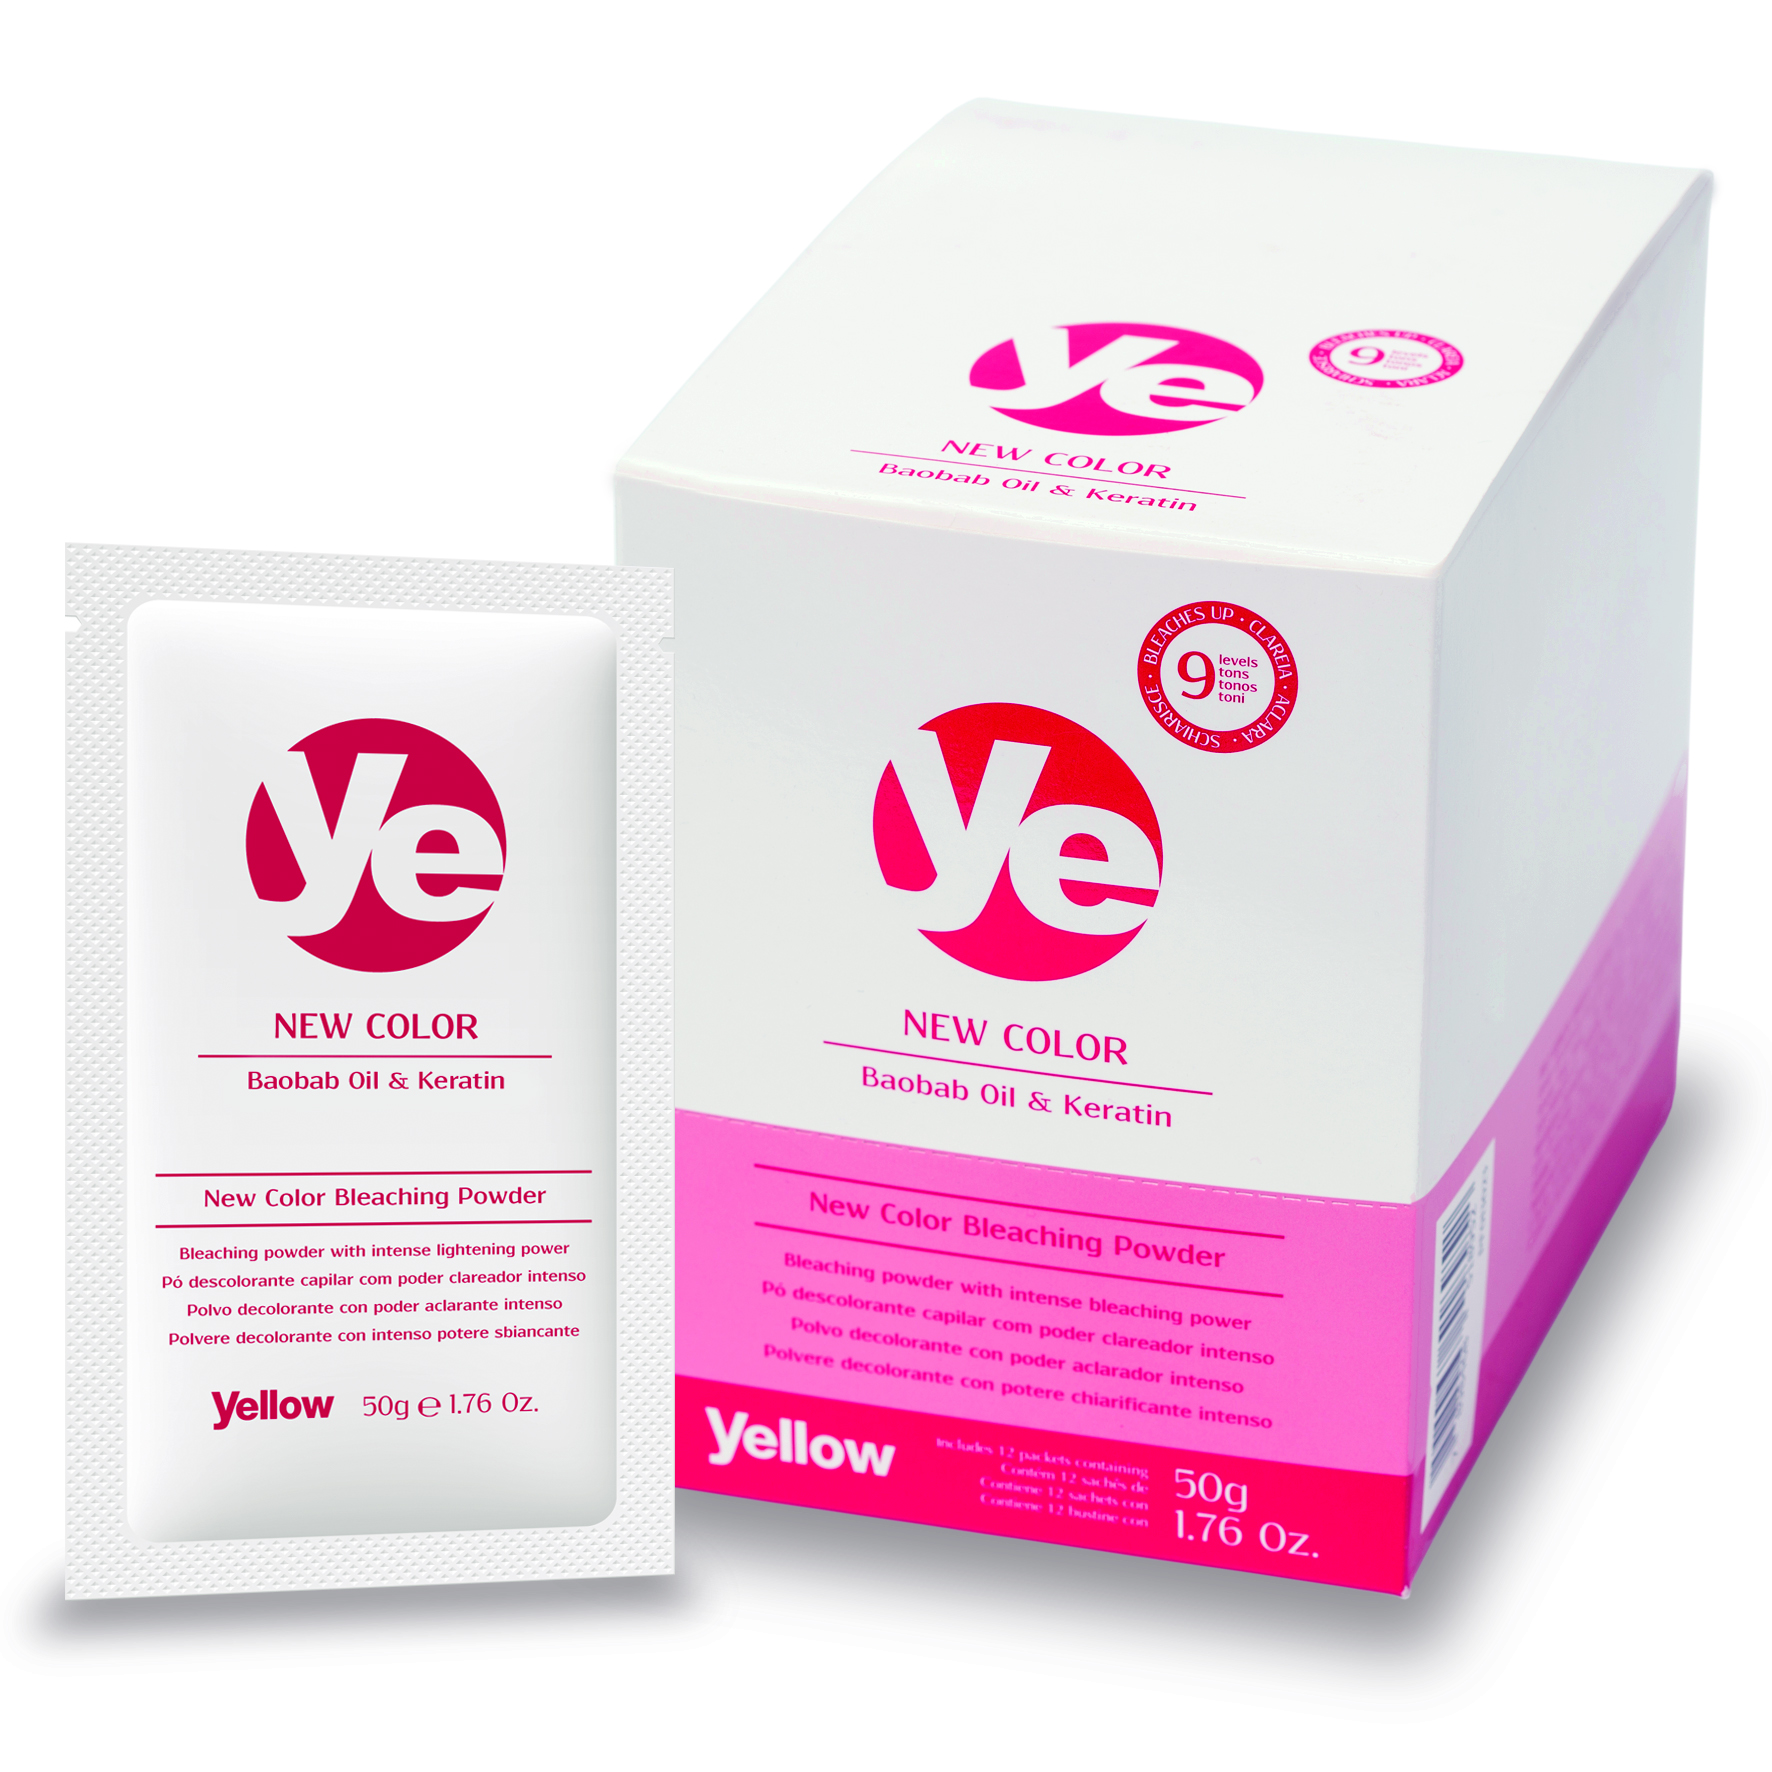 Ye New Color Bleaching Powder Sachet - R$ 126,50